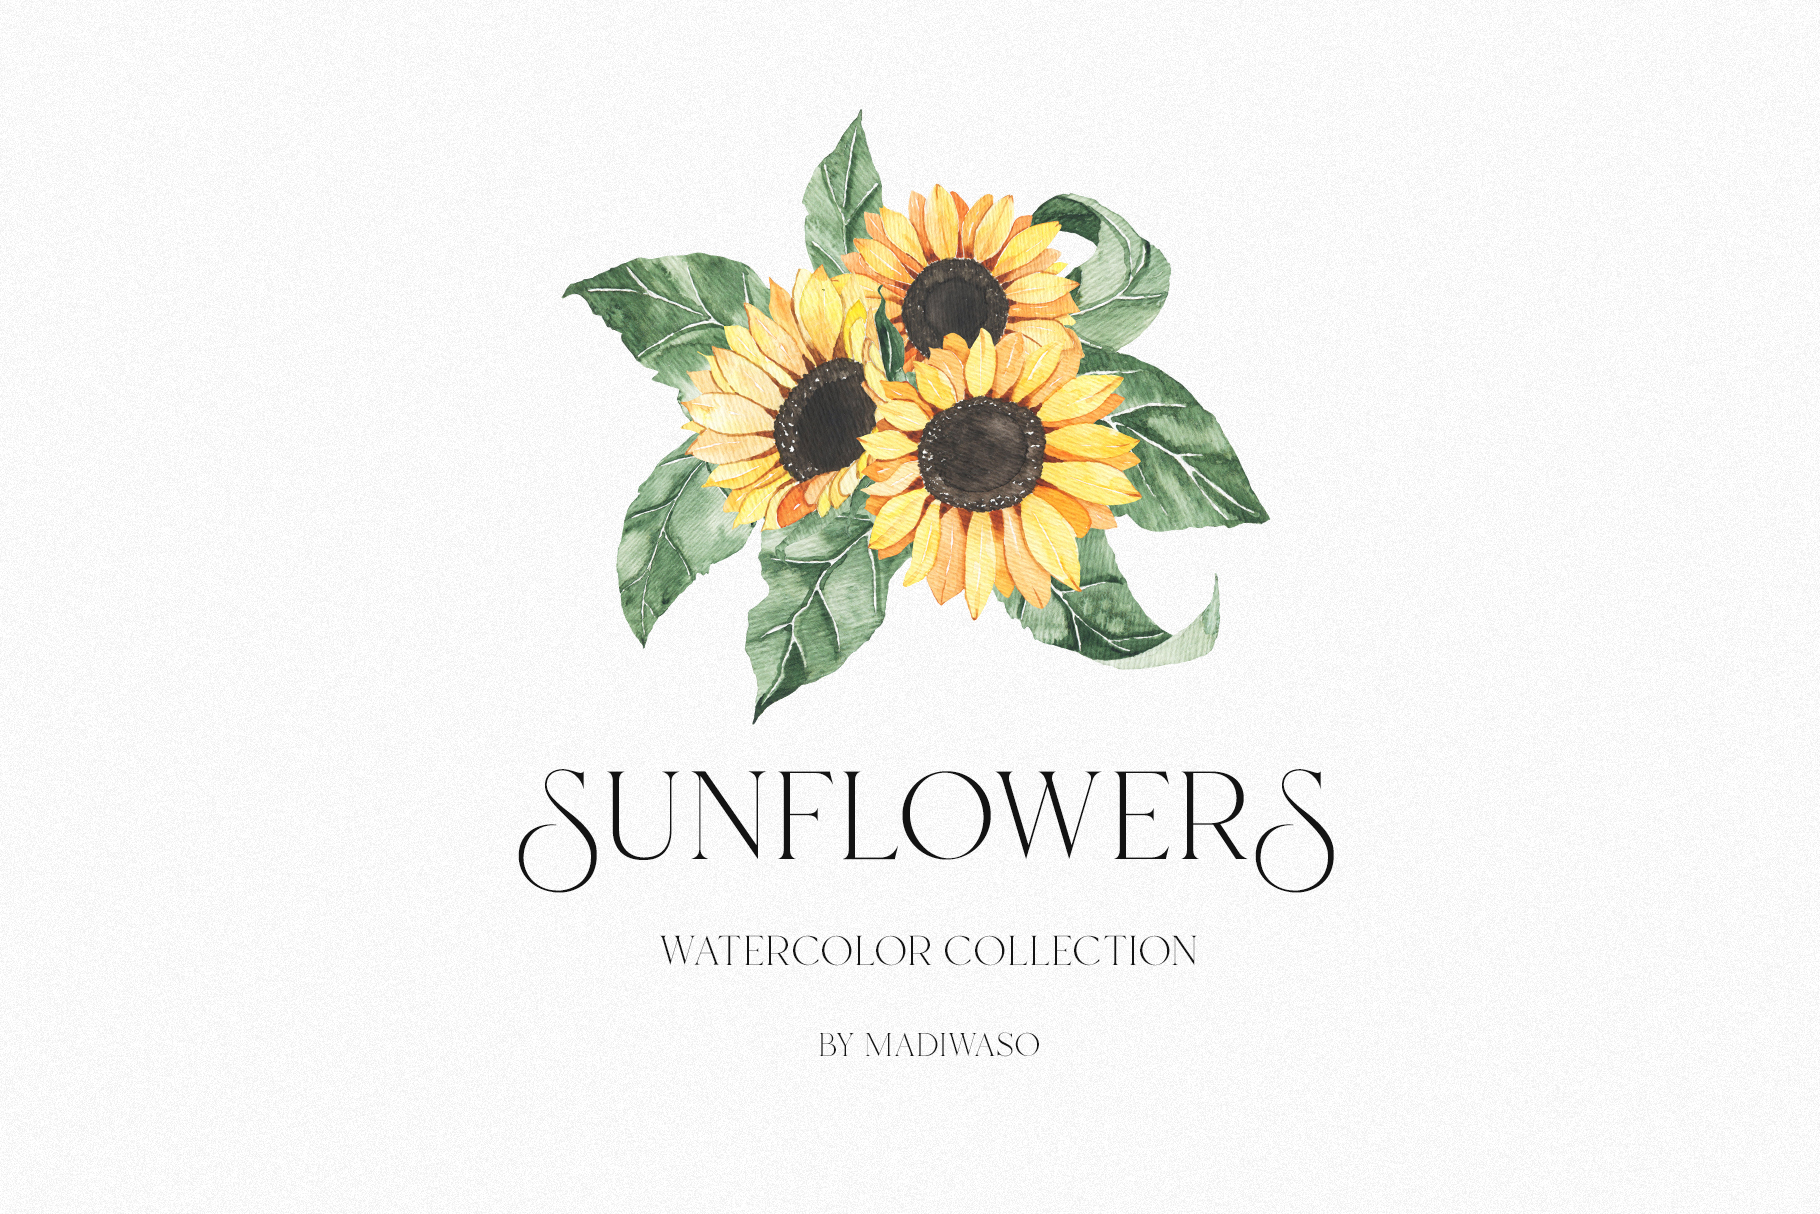 Watercolor Sunflowers Collection